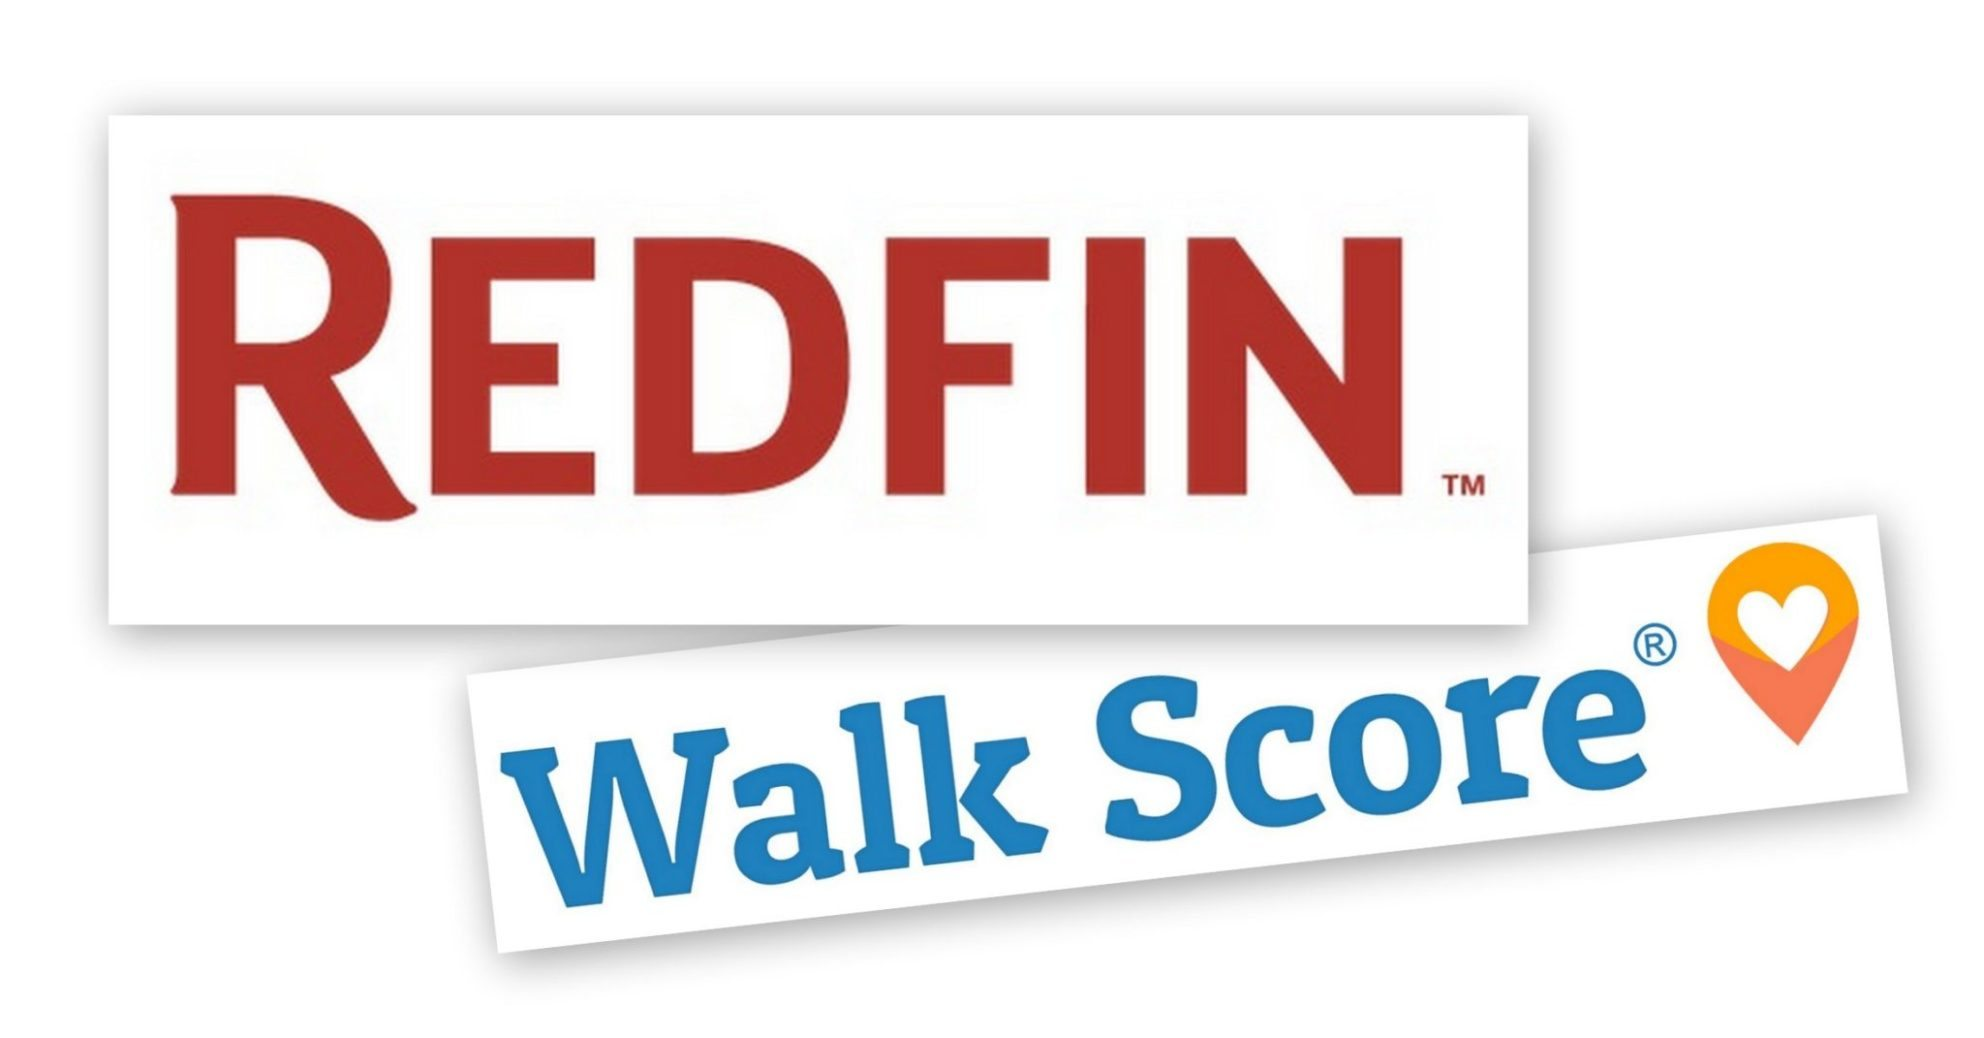 Redfin's first acquisition: Walk Score